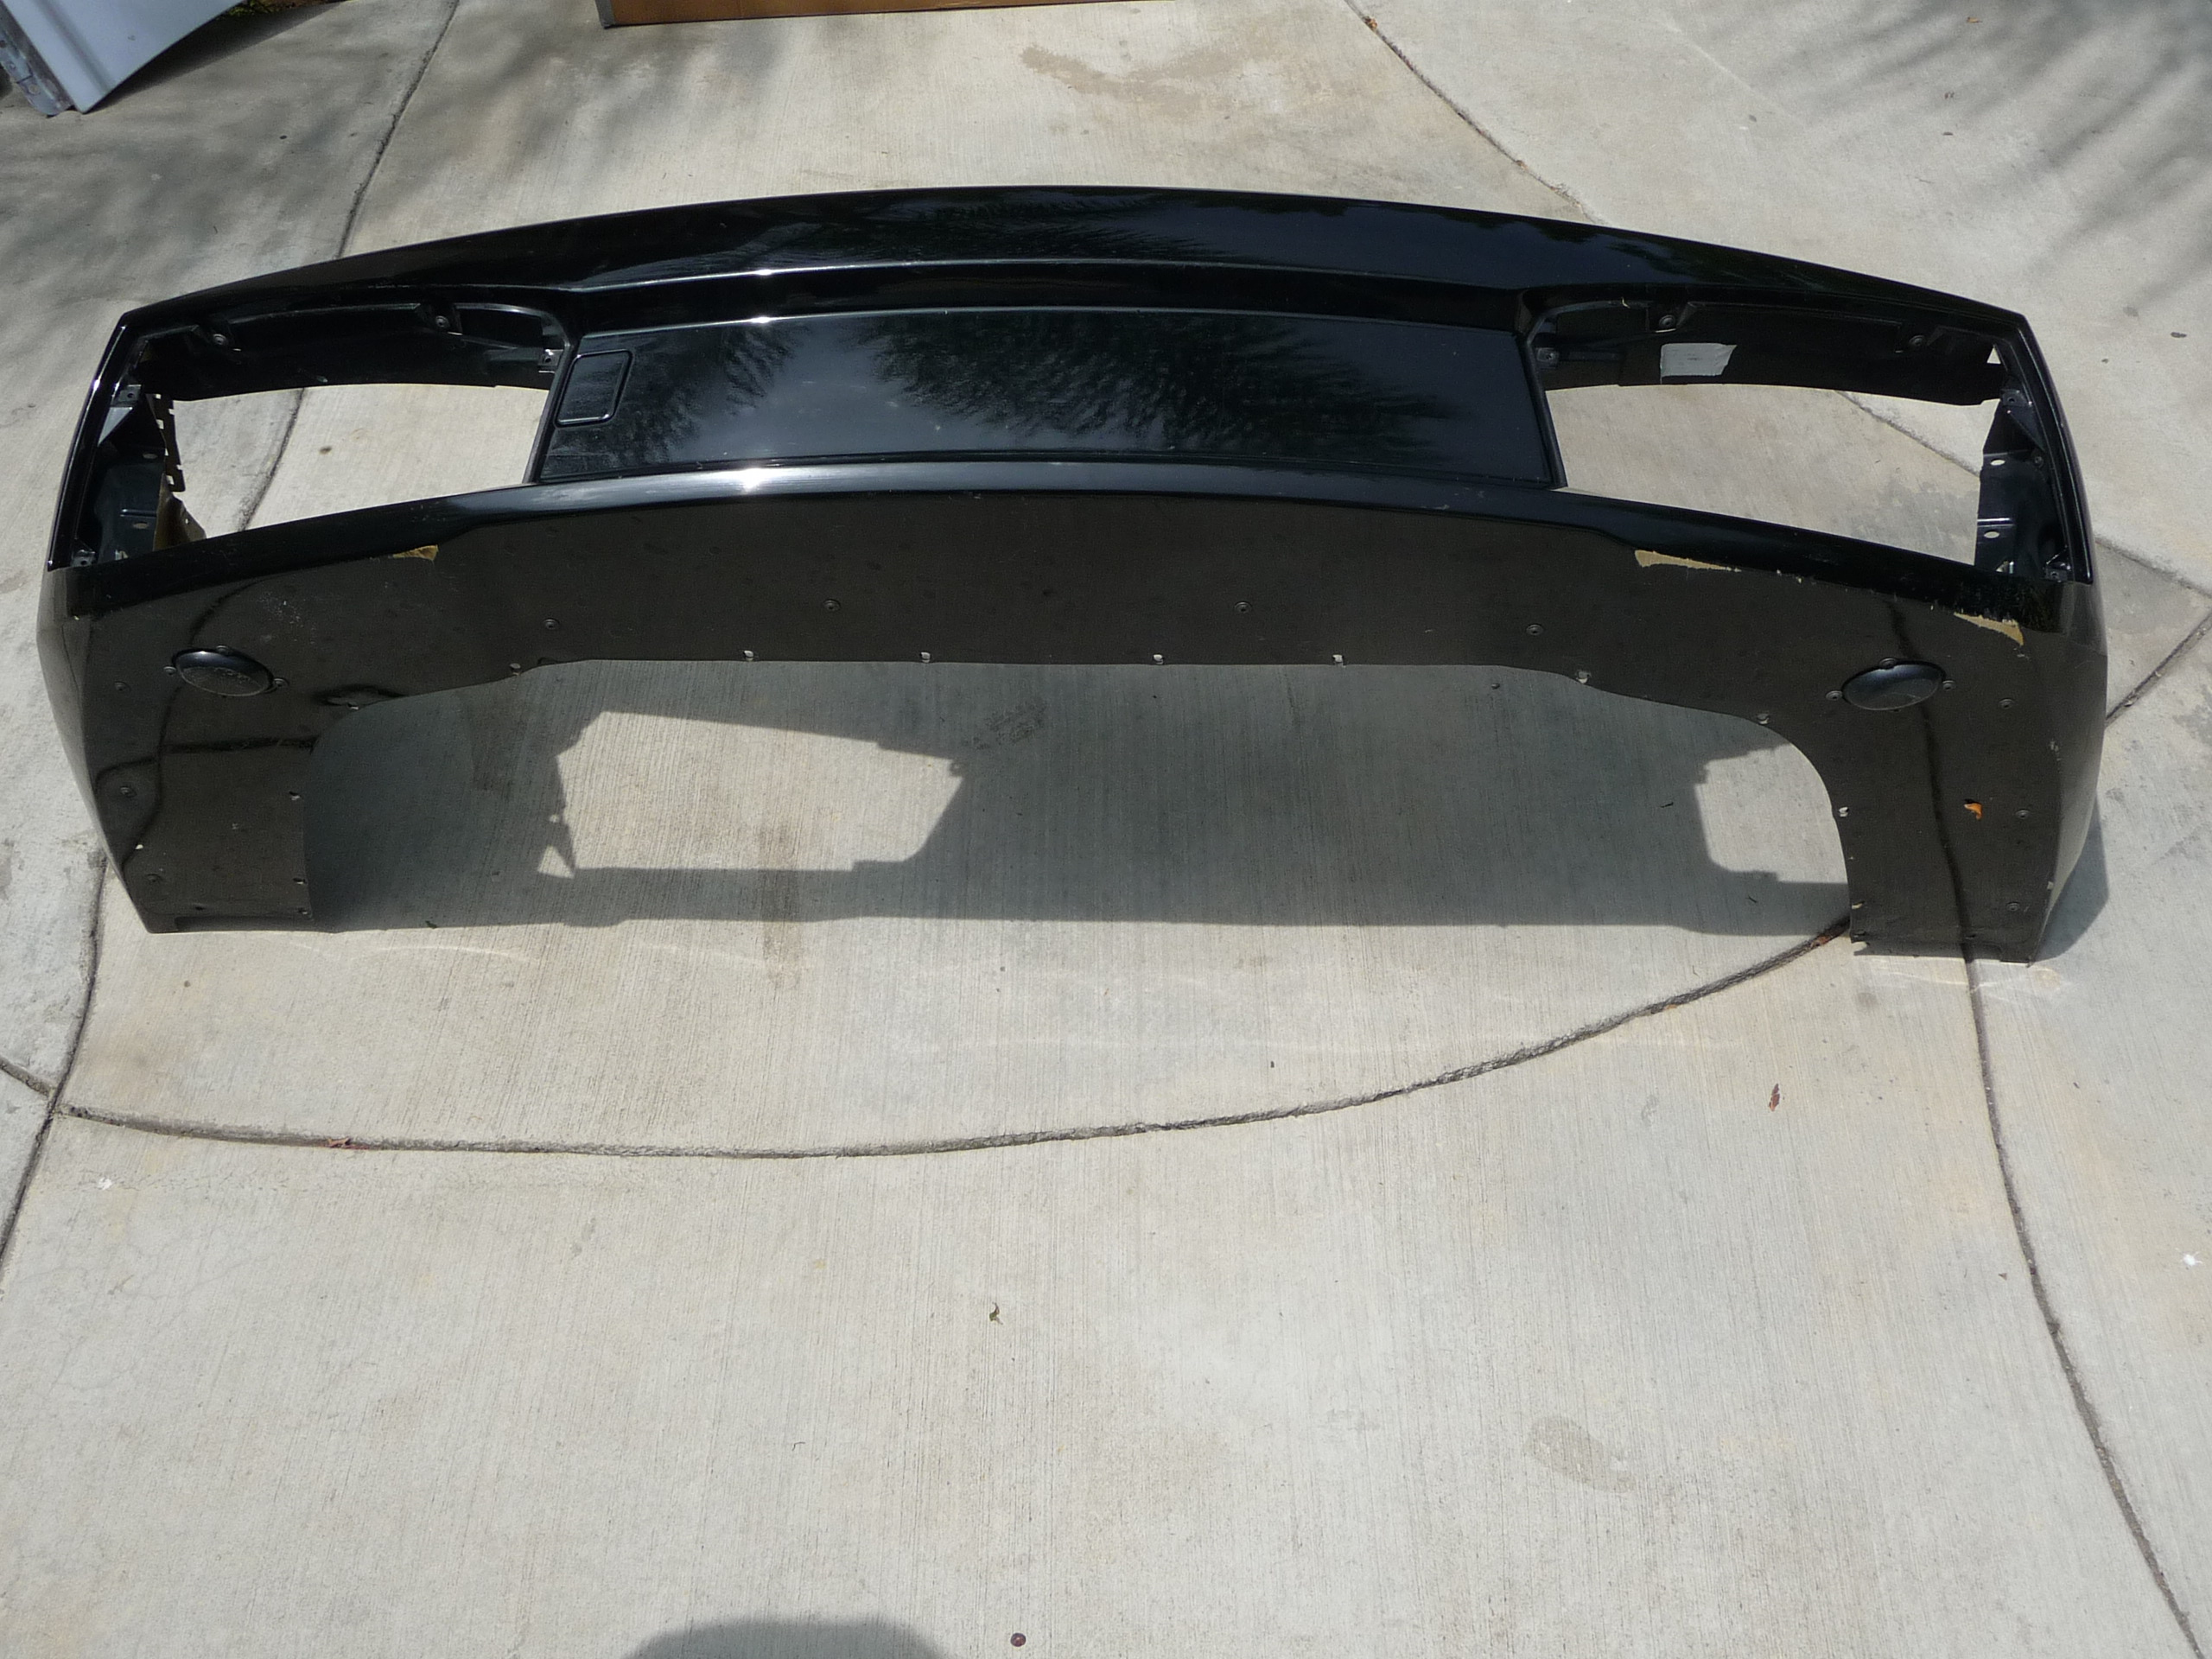 2005 2006 2007 2008 Lamborghini Gallardo Spyder Coupe Front Bumper Cover 400807437; 400807429A OEM - Used Auto Parts Store | LA Global Parts